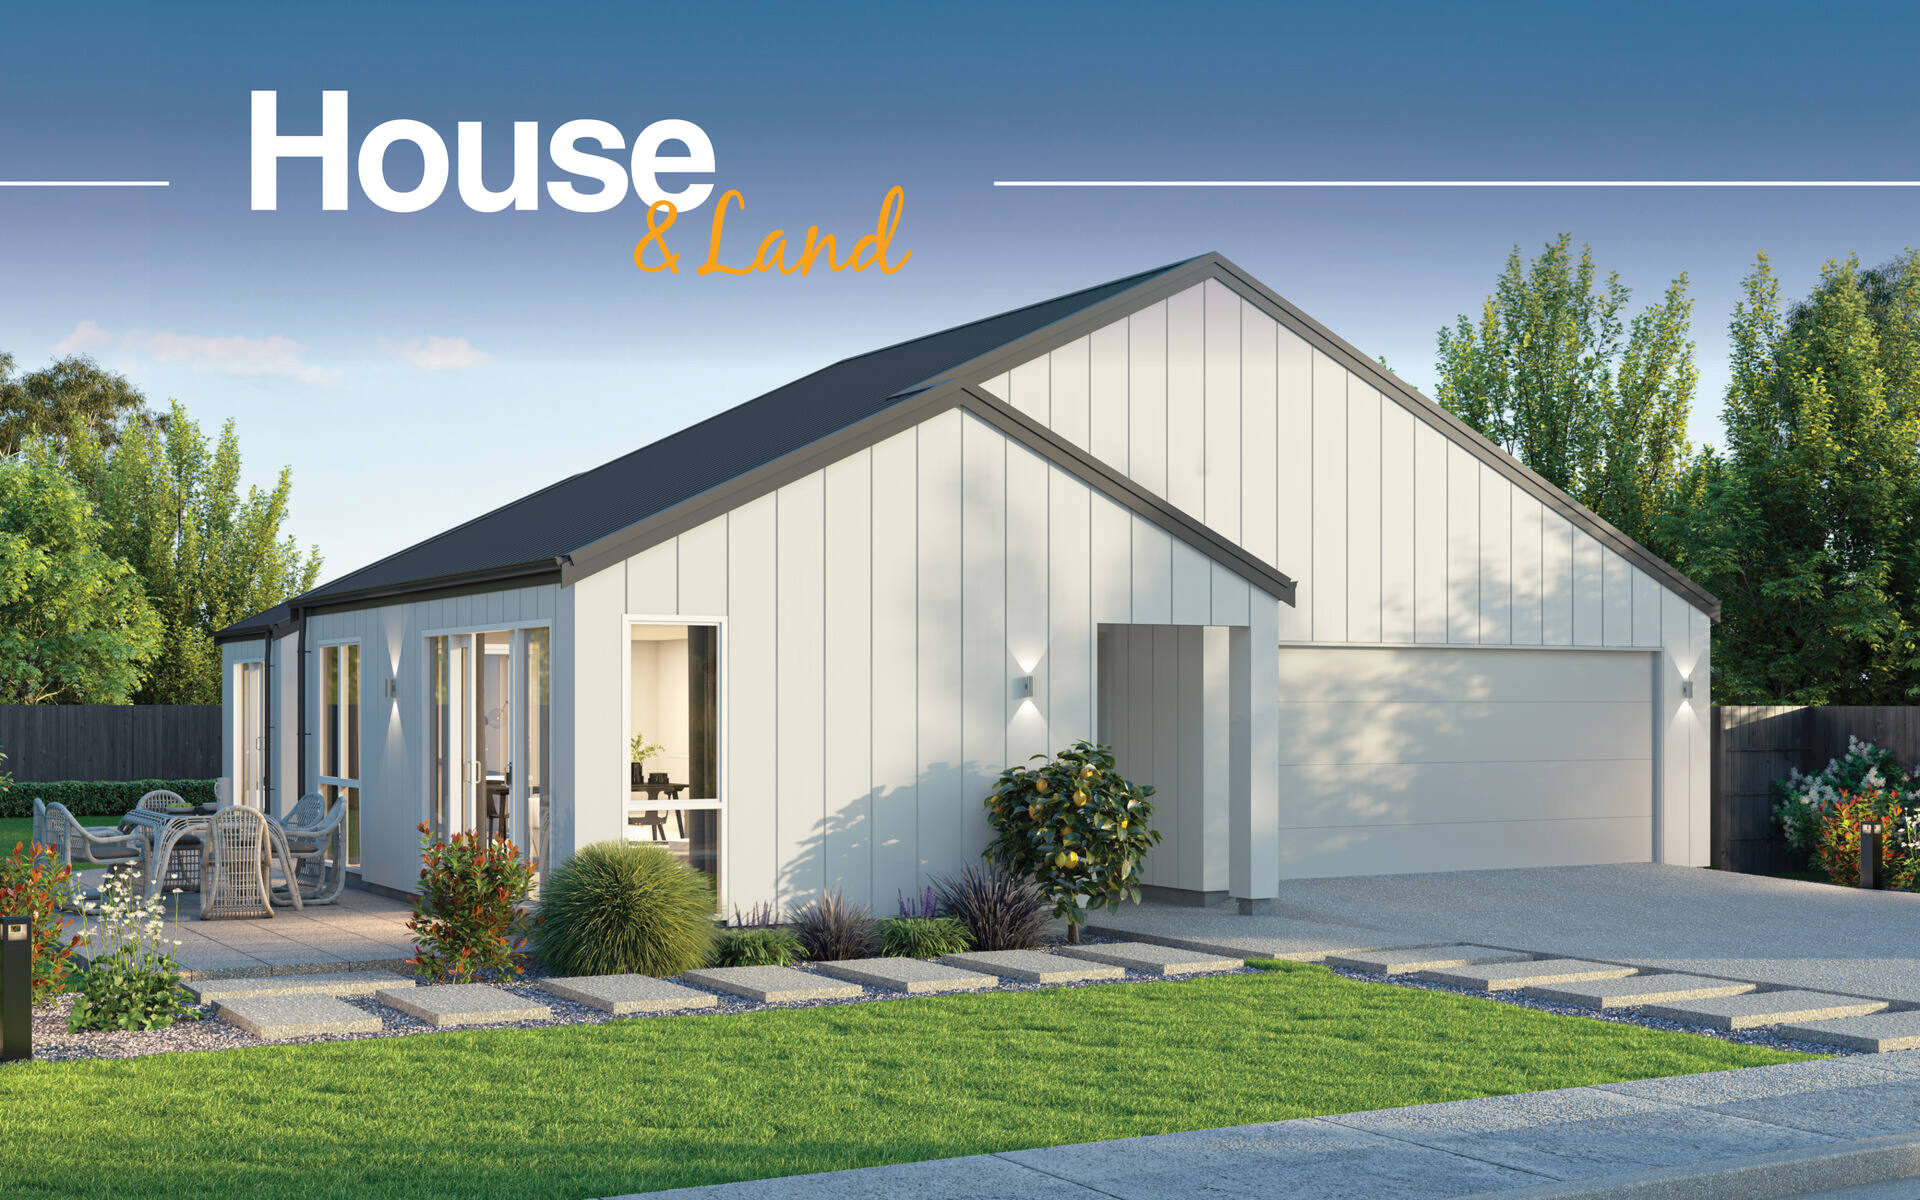 Find a House & Land package